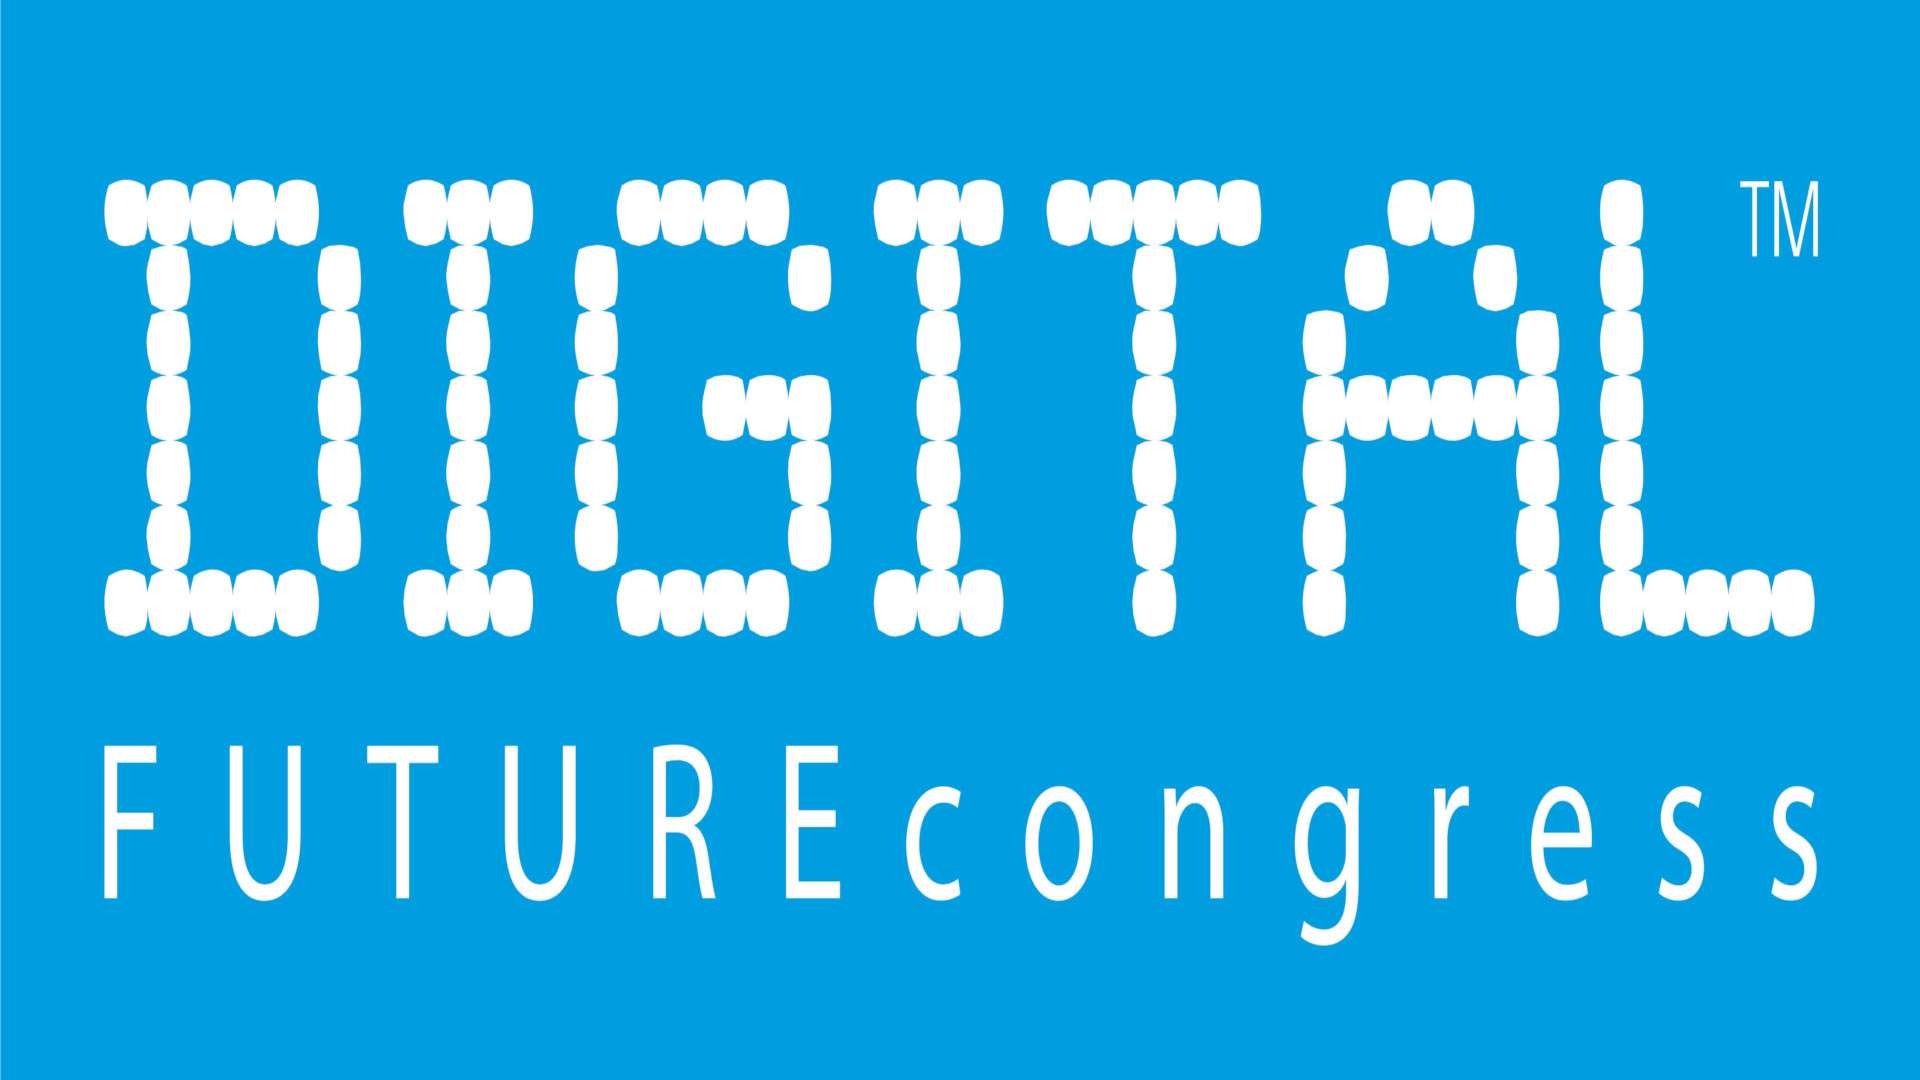 Logo vom Digital FUTUREcongress.